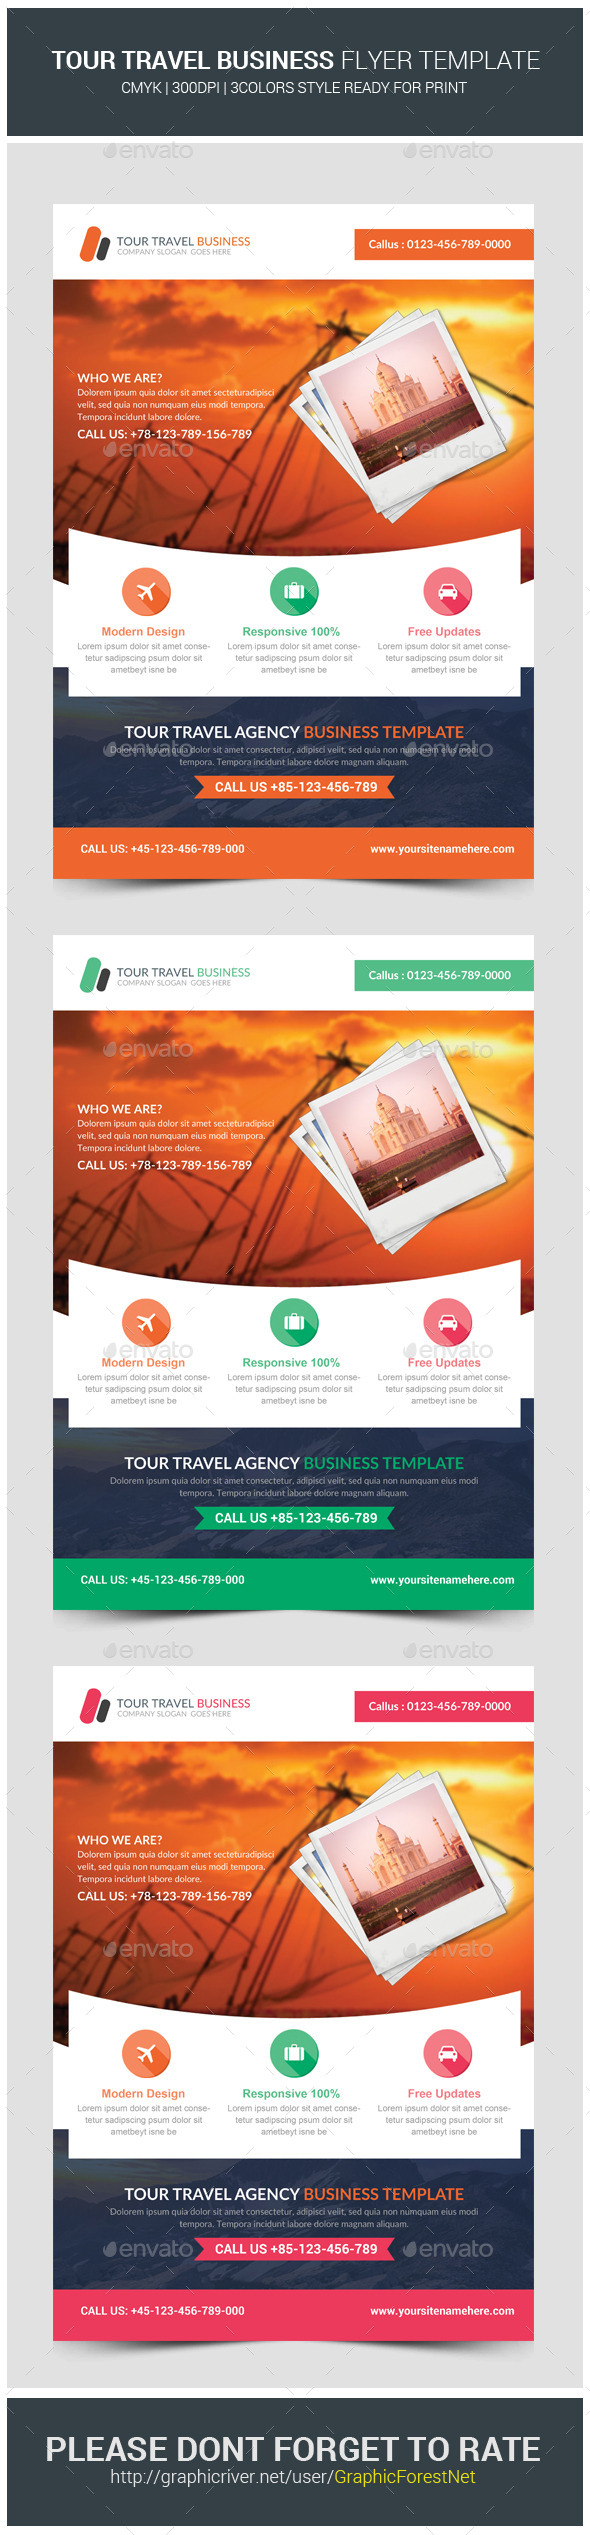 Travel Tours Business Flyer Template - Corporate Flyers